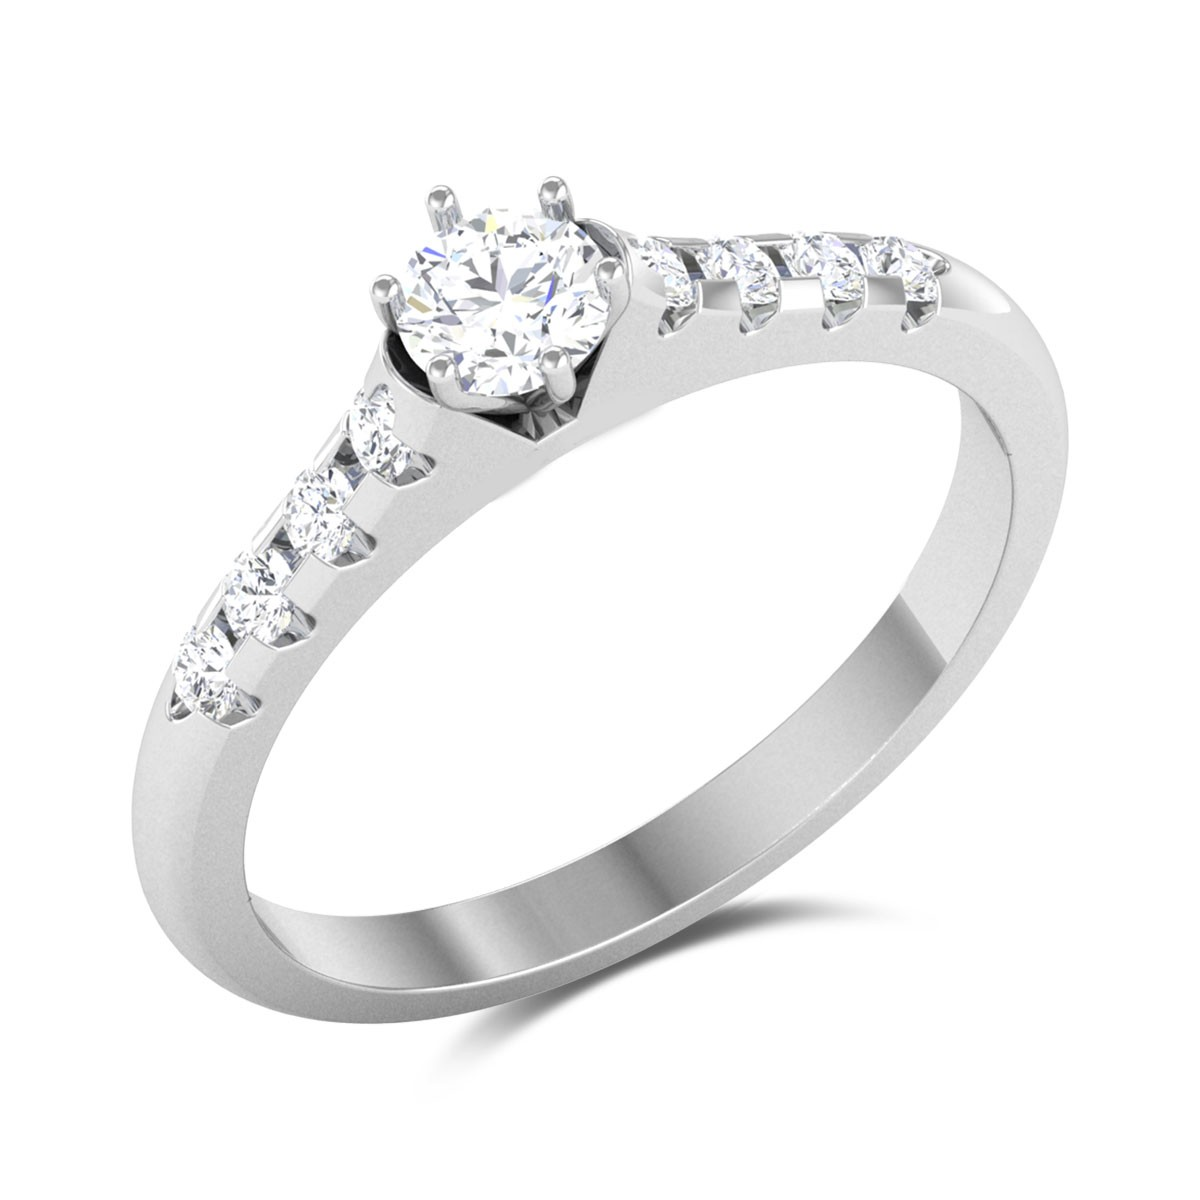 Dancing Rainbow 6 Prong Solitaire Ring